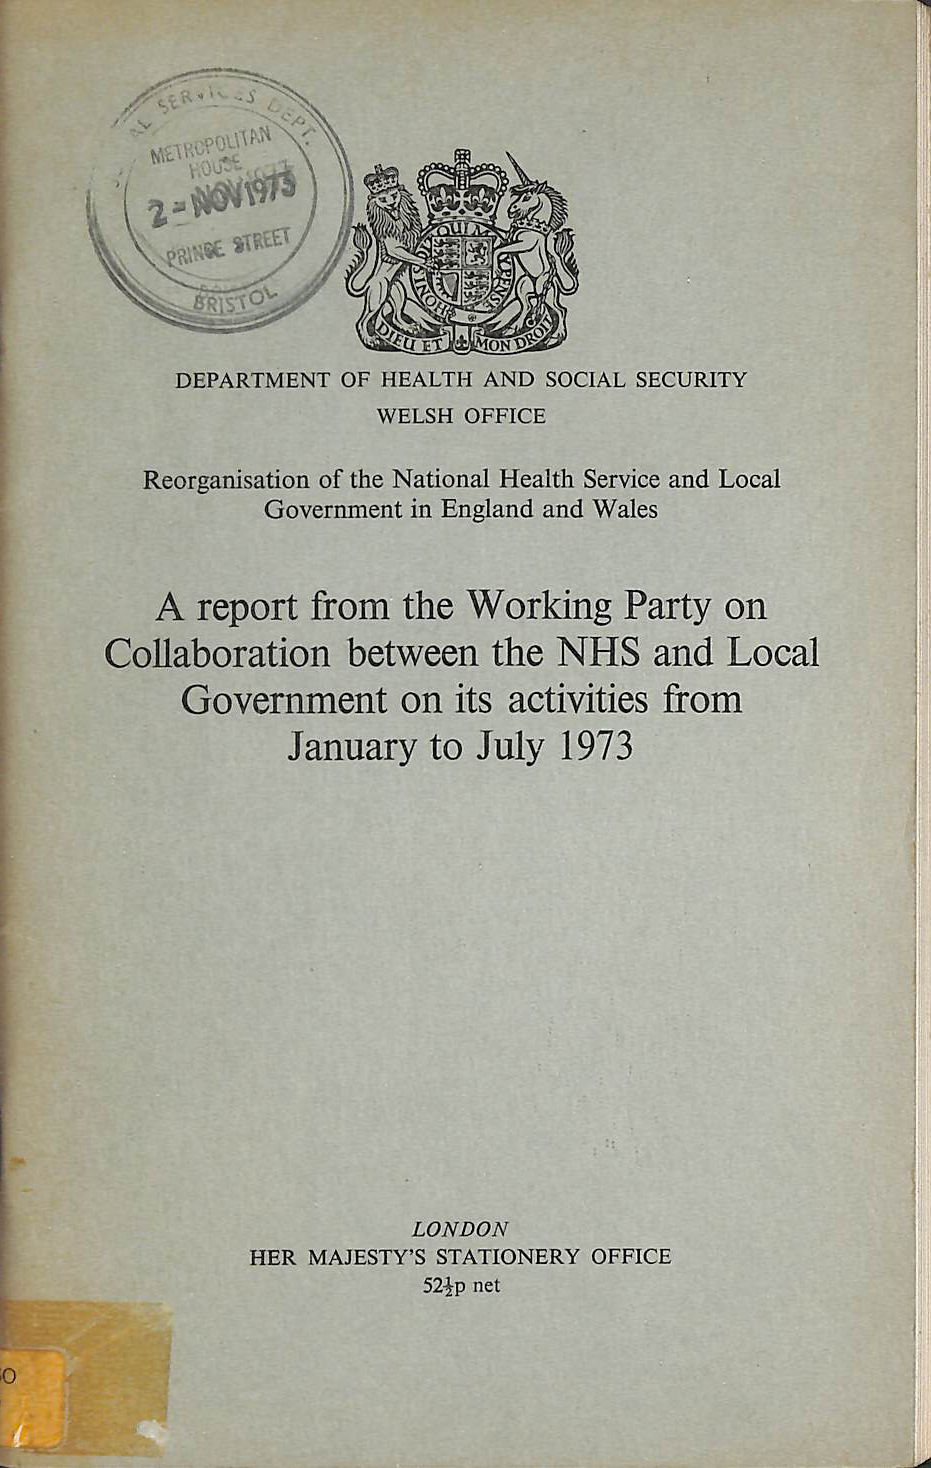 Image for Reorganization of the National Health Service and Local Government in England and Wales: Working Party Report, Jan.-July 1973